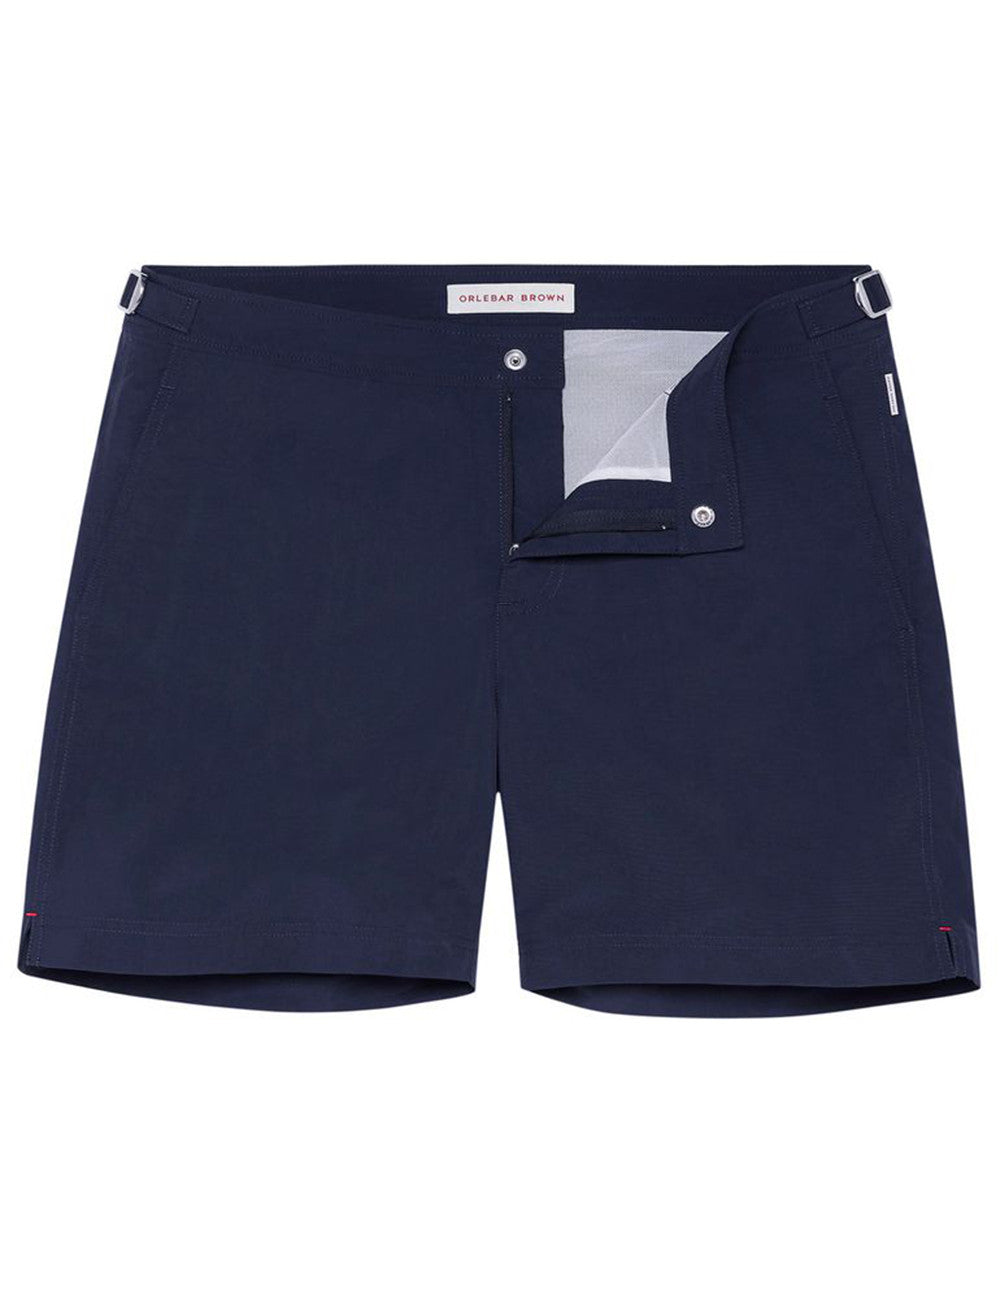 Bulldog Swim Short